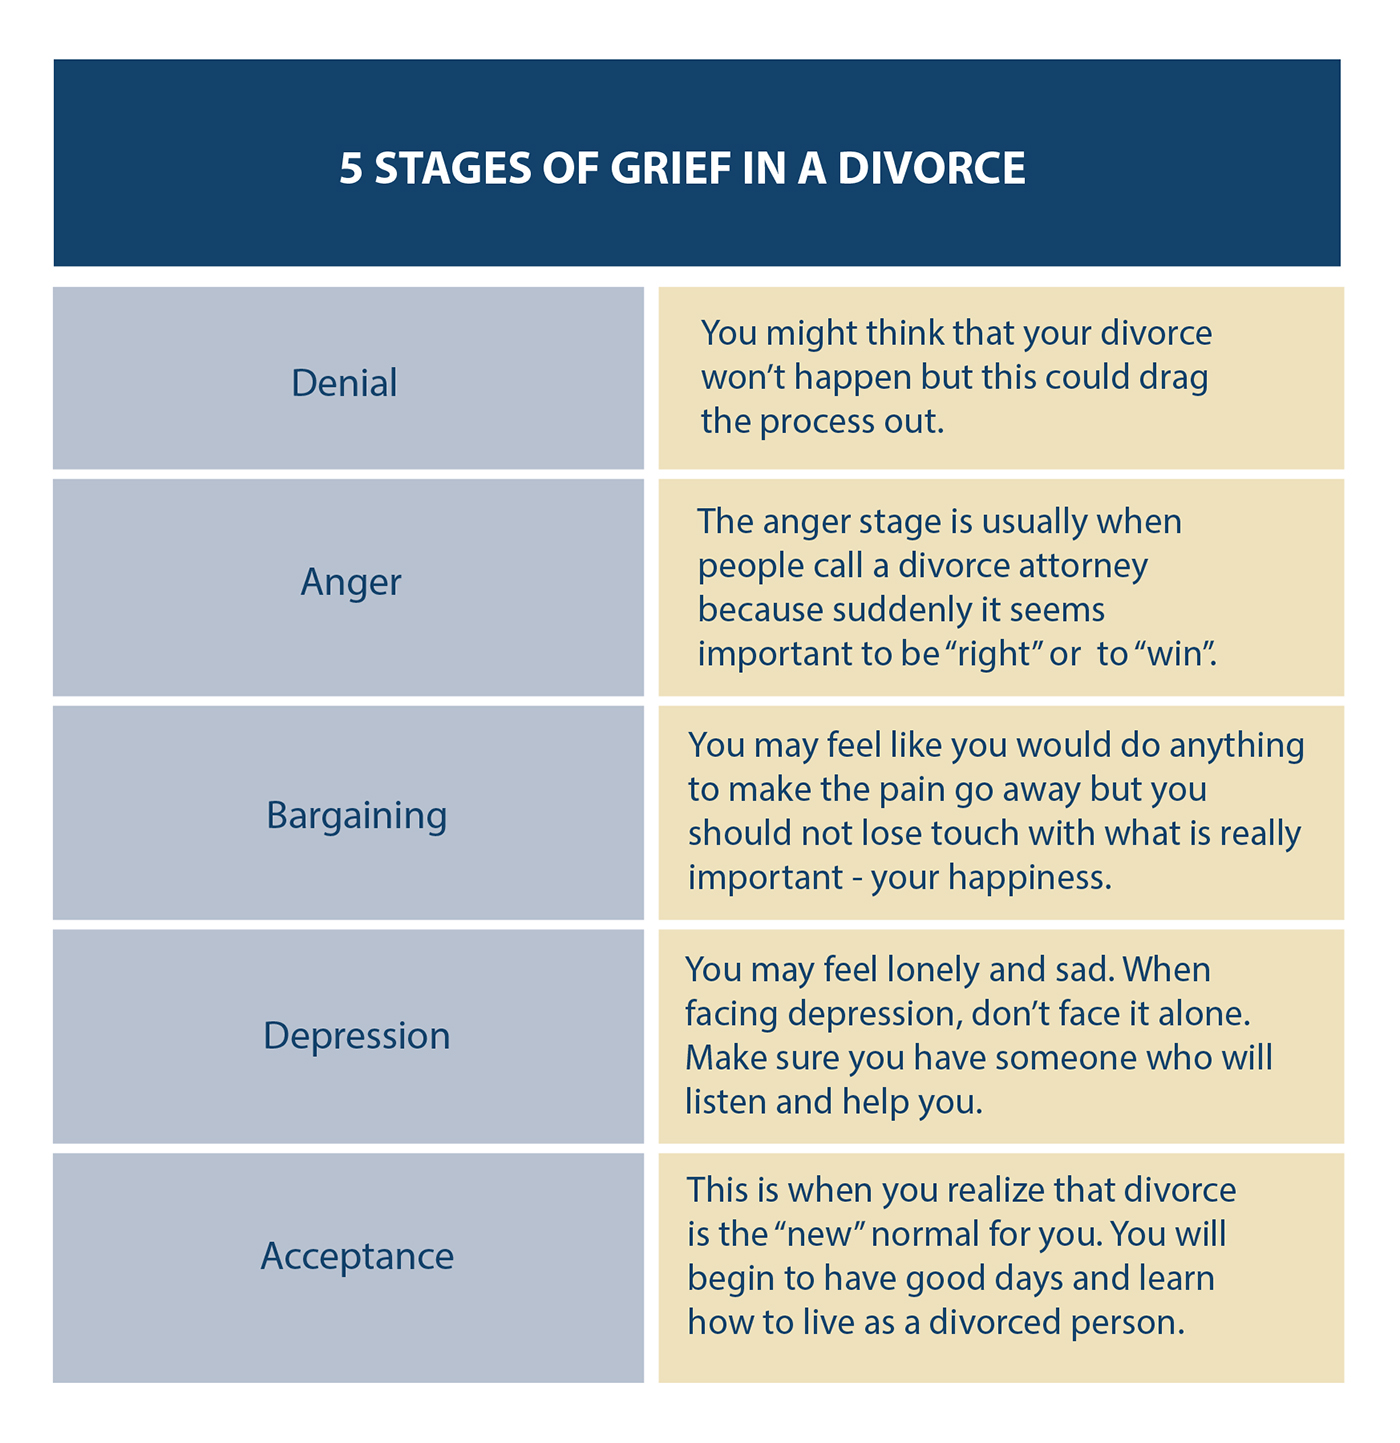 5 Stages Of Grief In A Divorce